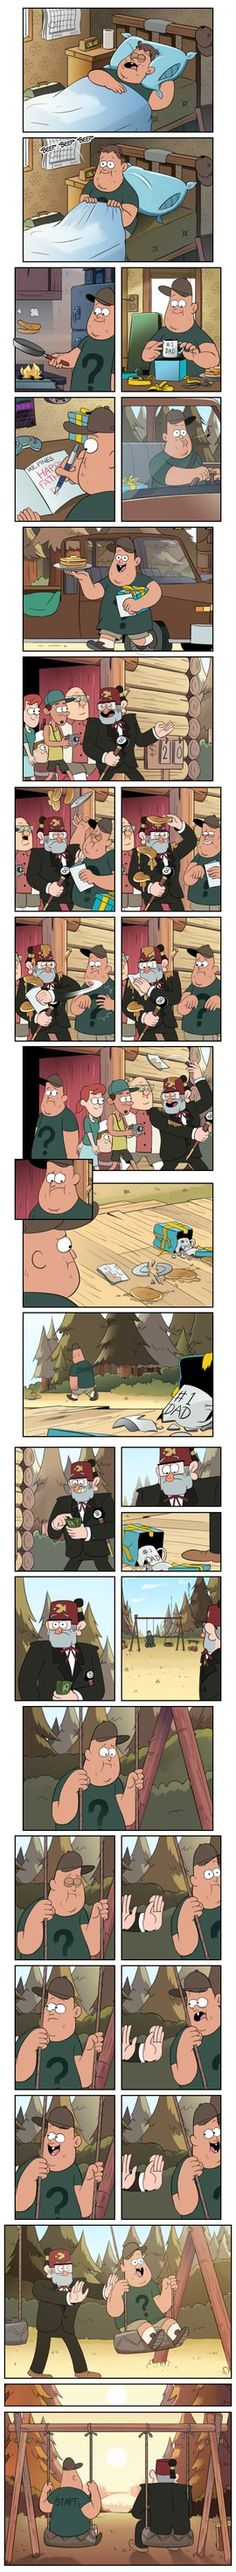 This brought me to tears! EDIT: Thanks so much to everyone who responded. I had heard of Gravity Falls, but hadn't actually had the opportunity to watch it. I now need to find Gravity Falls! Art Gravity Falls, Gravity Falls Comics, Monster Falls, Desenhos Gravity Falls, Gavity Falls, Dipper And Mabel, Mini Comic, Reverse Falls, Father Figure